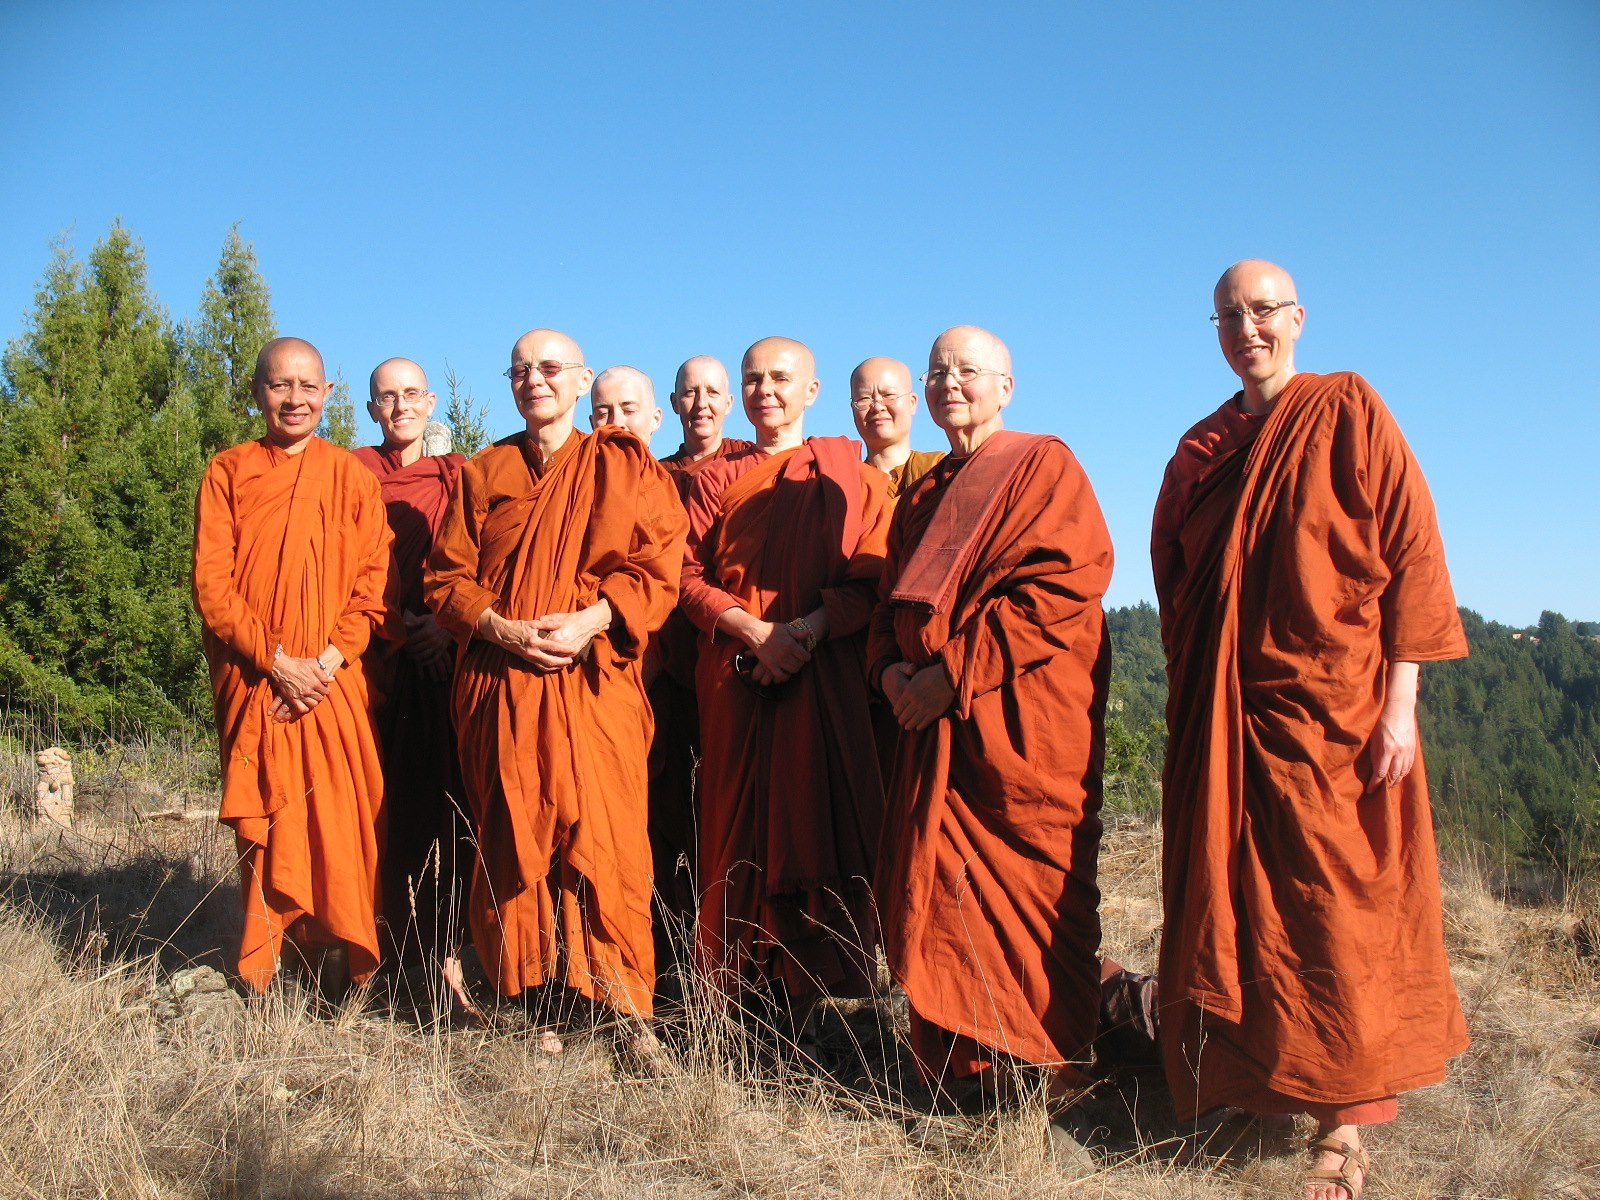 You can see me at the back in the centre with this group of Bhikkhunis at Aranya Bodhi for the Bhikkhuni Camp in 2012.